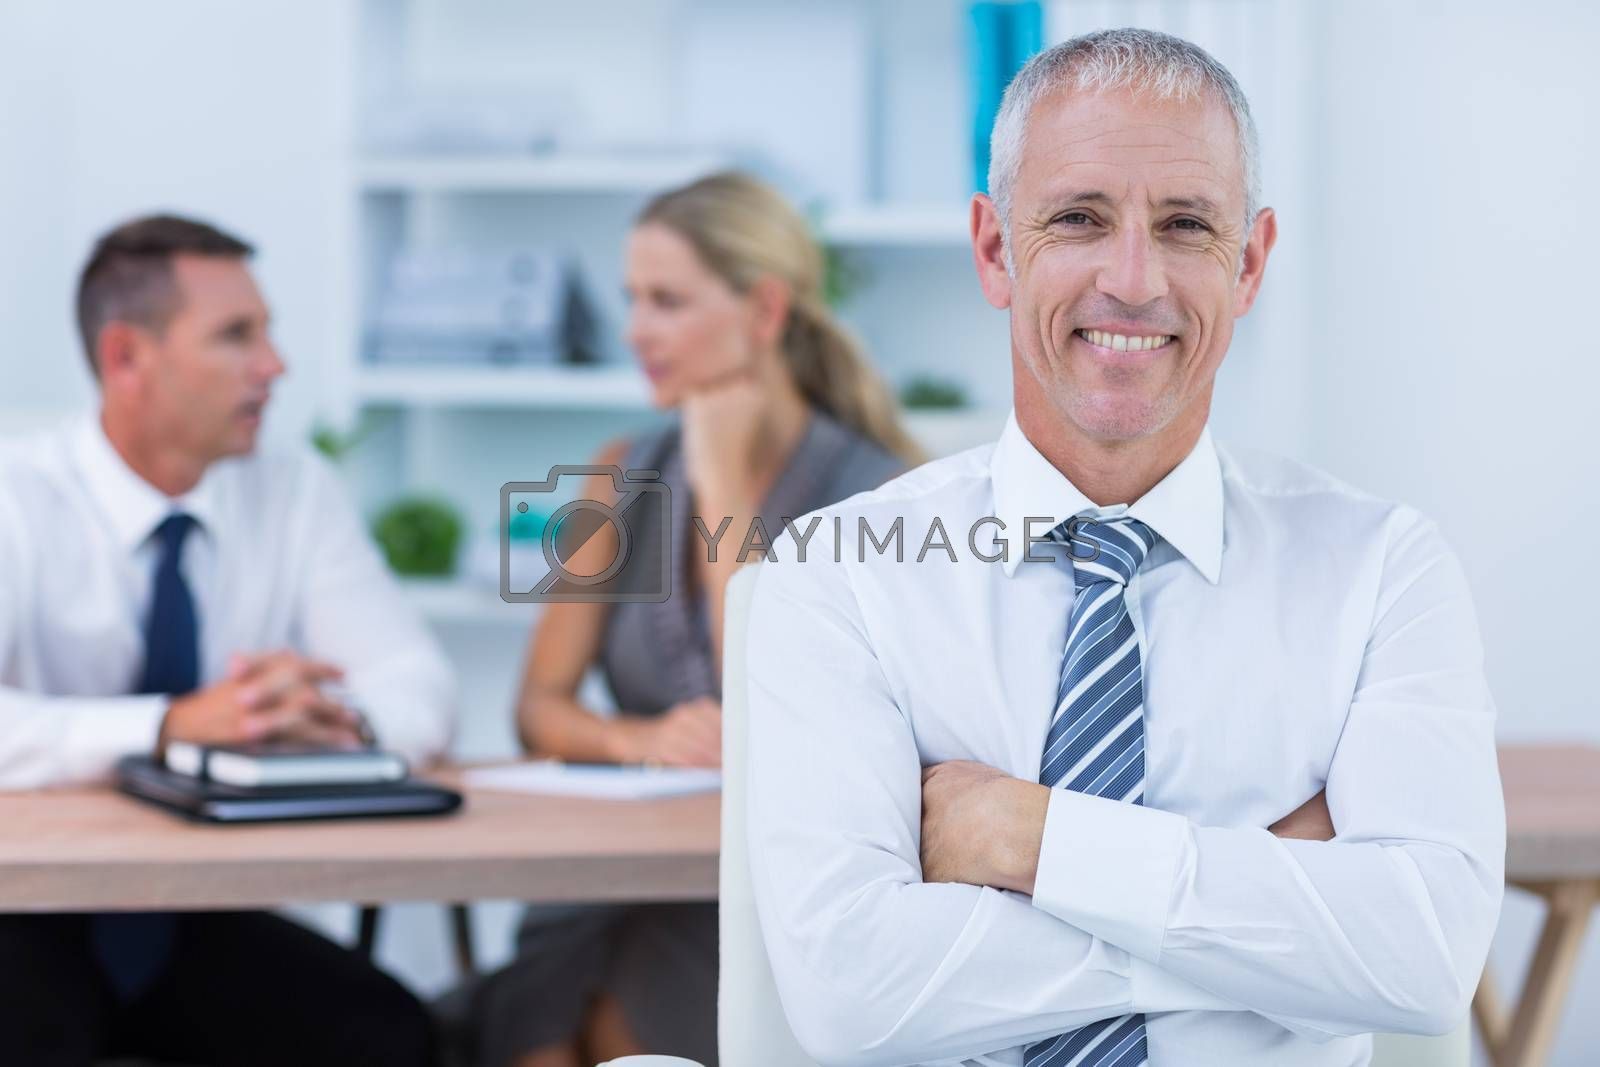 Royalty free image of Happy businessman smiling at camera with colleagues behind by Wavebreakmedia